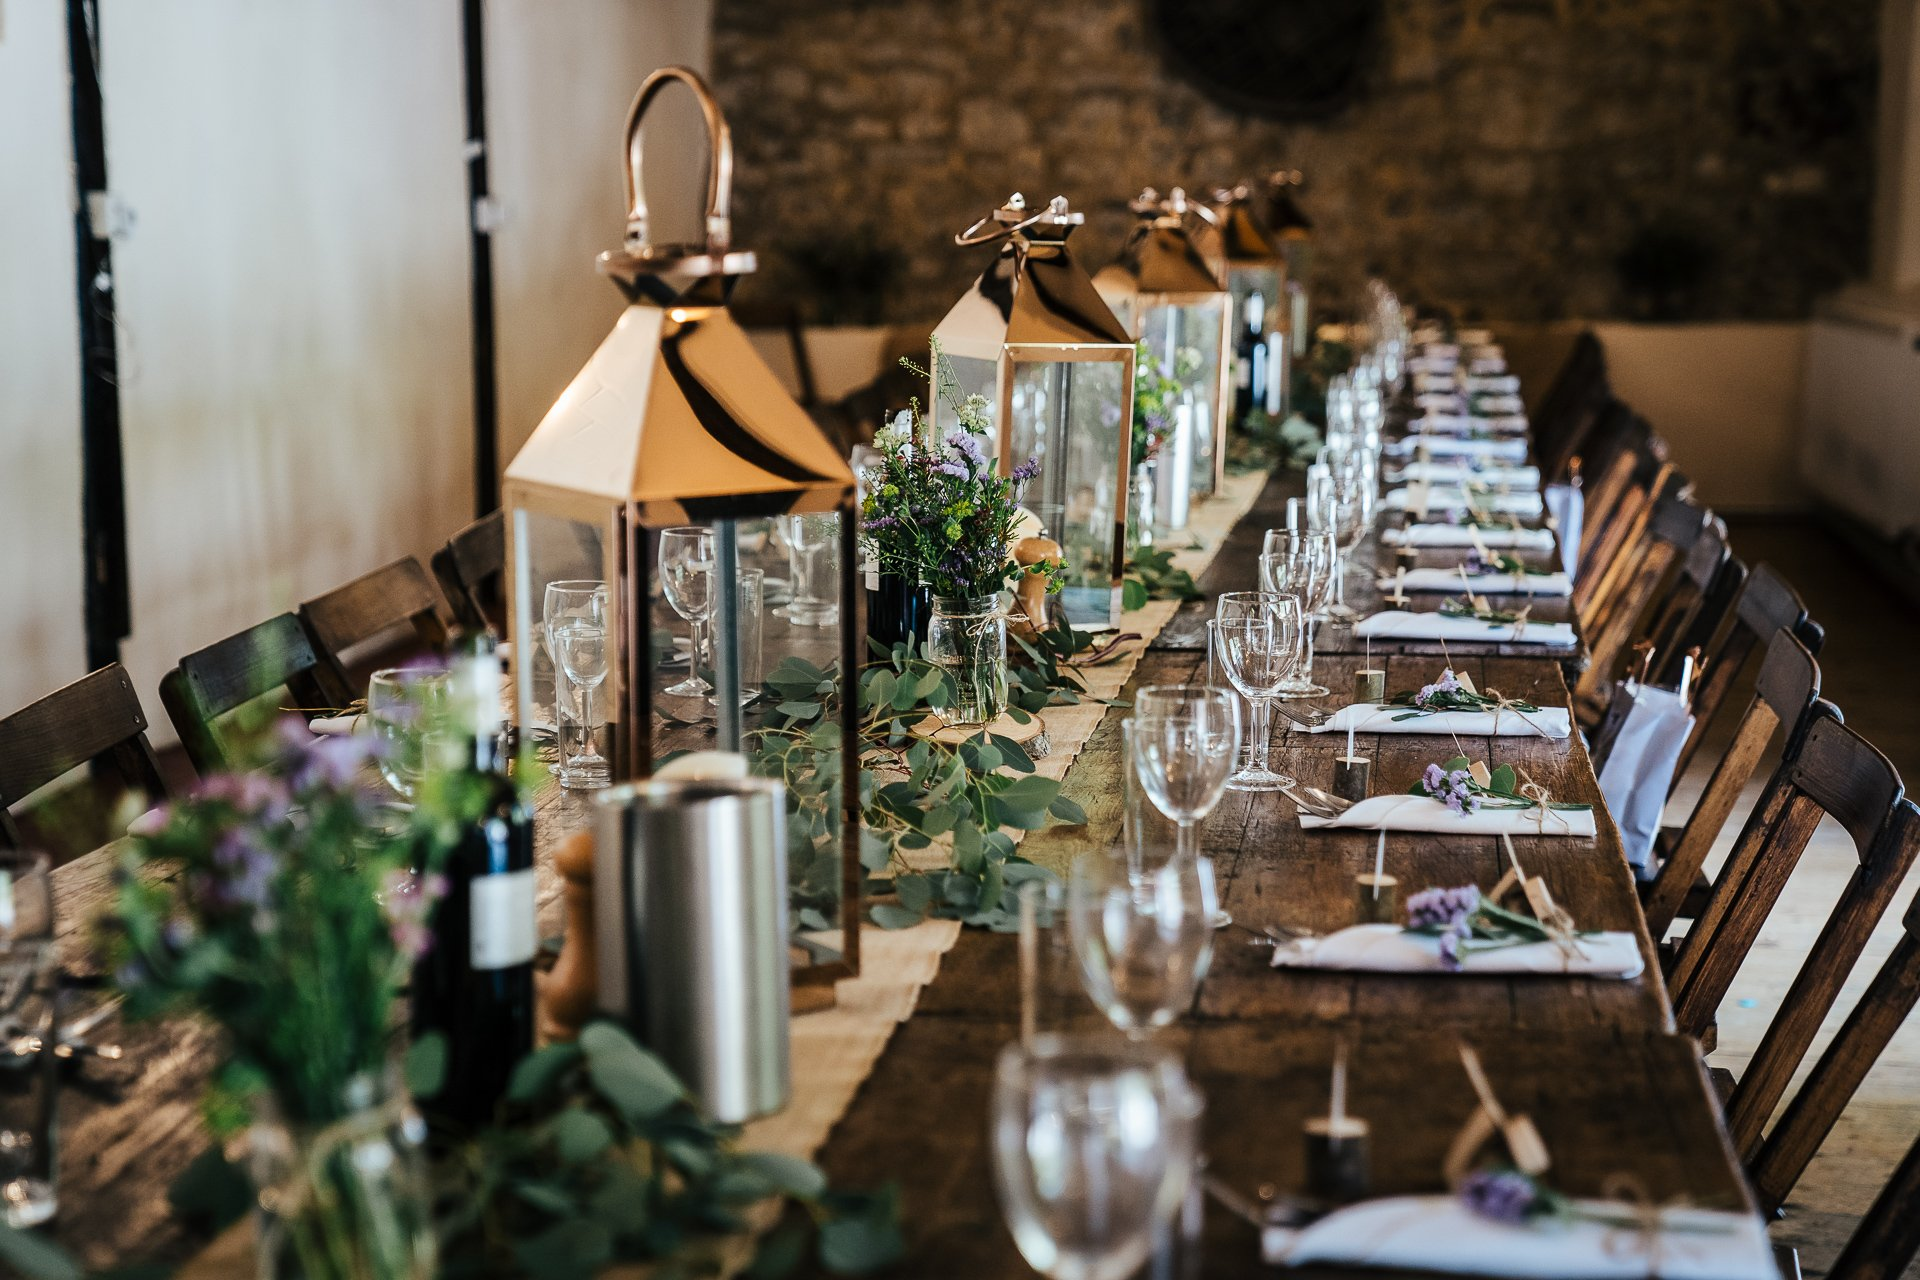 The buttery Wedding Breakfast at Rustic wedding